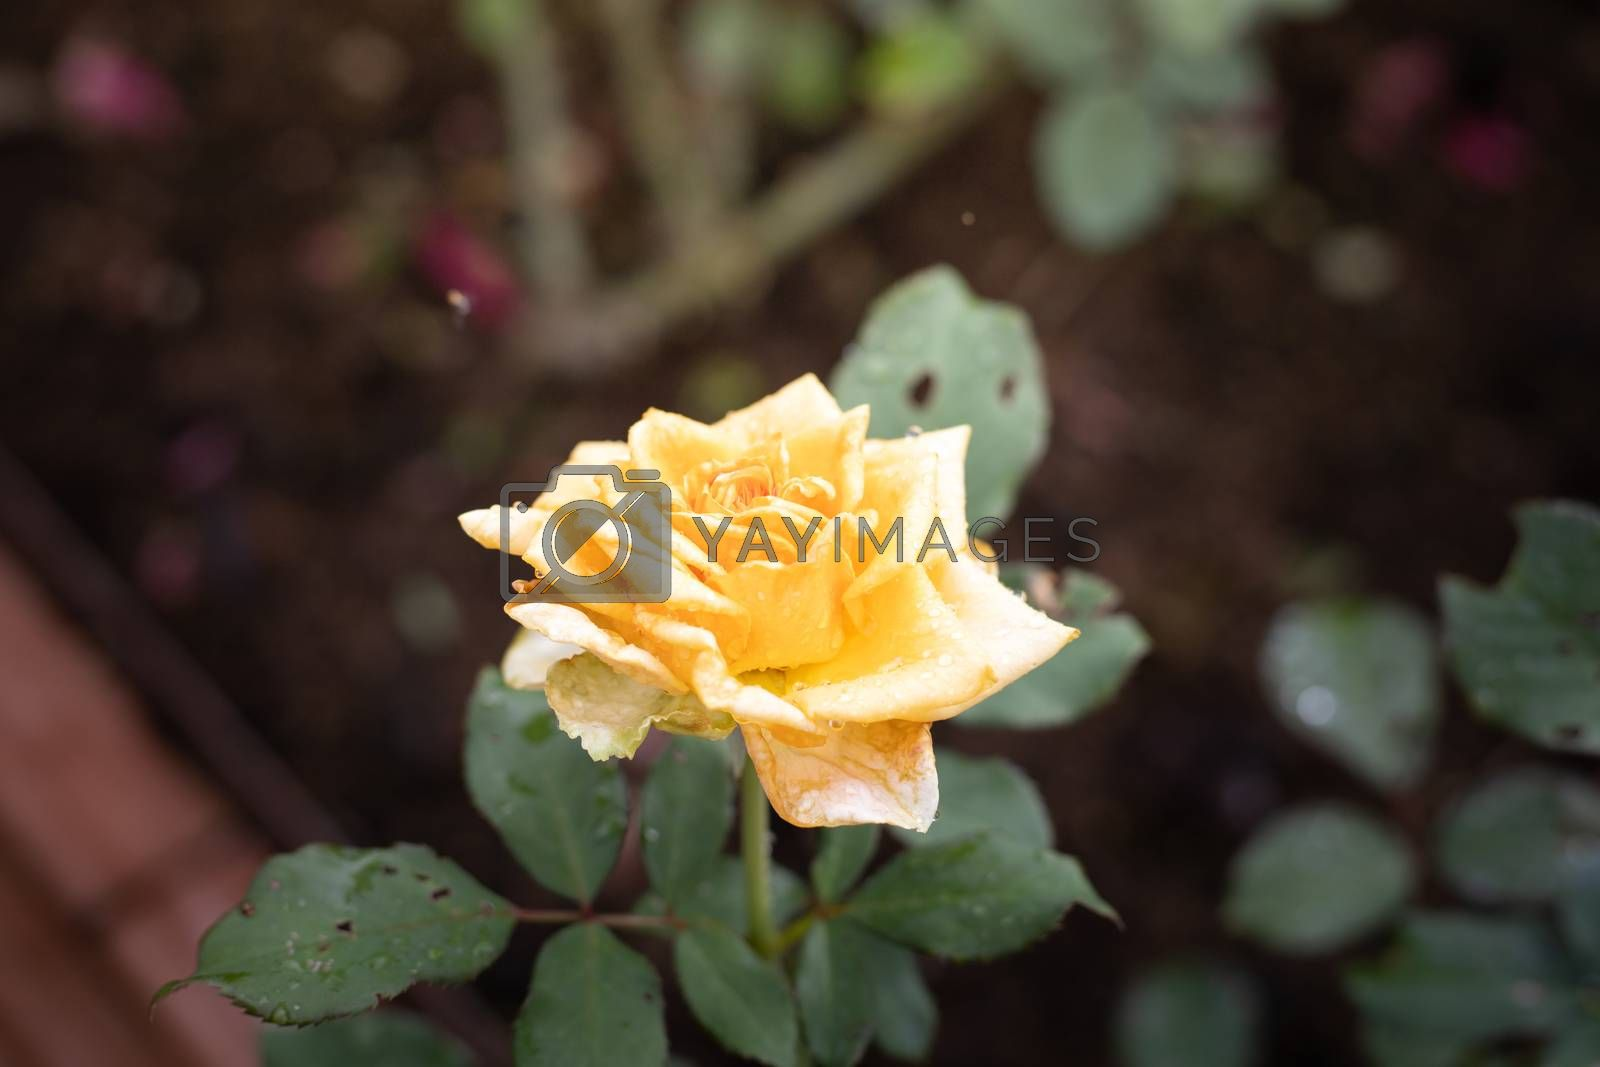 Roses in the garden  by Teerawit Tj-rabbit